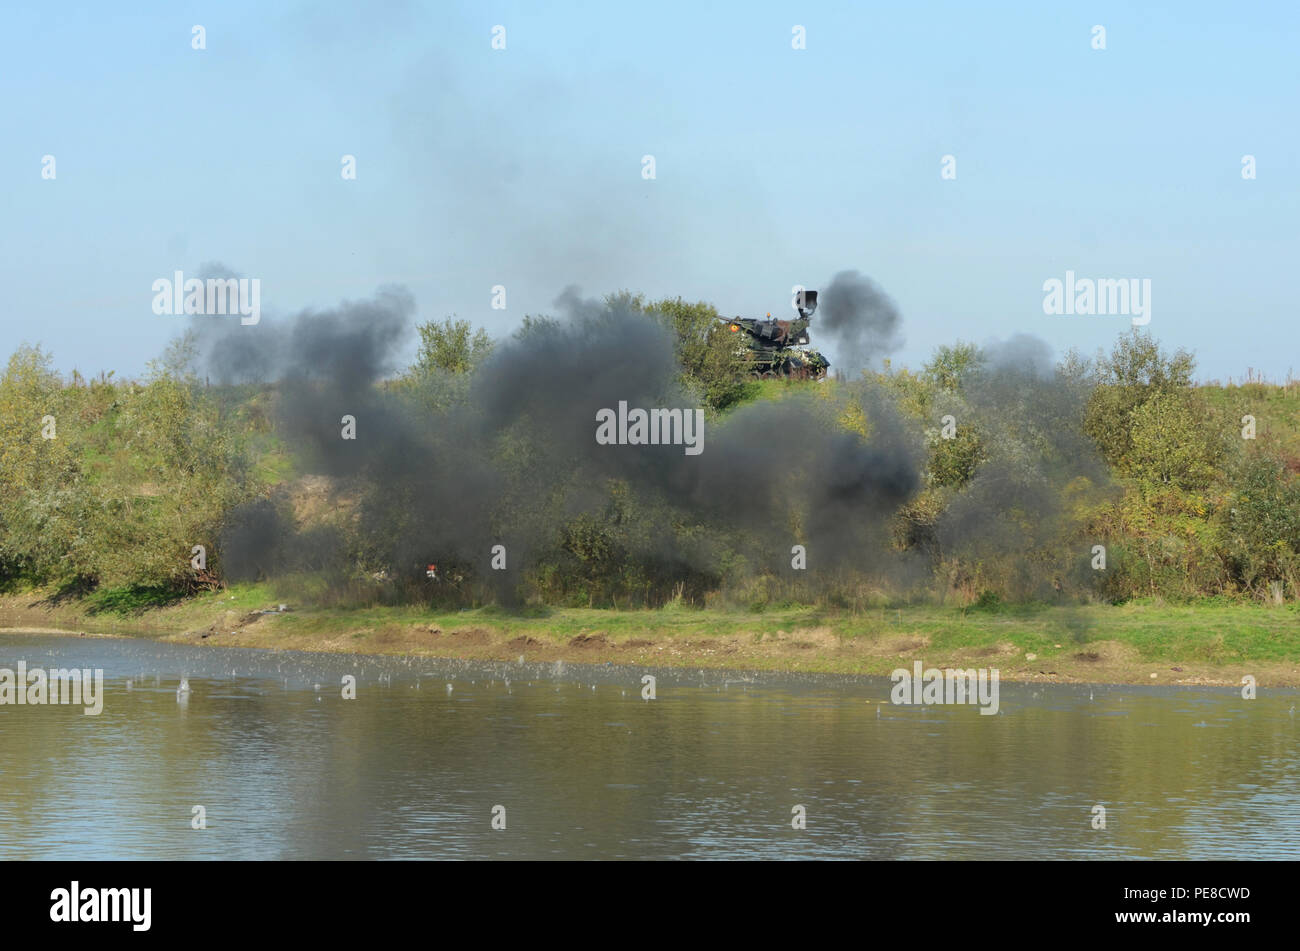 Debris splashes into the Mures River as smoke rises from the bank from a simulated airstrike explosion during Exercise Dragoon Crossing – Romania, near Arad, Romania, Oct. 24-26, 2015.  Dragoon Crossing – Romania is a strengthening of NATO's persistent presence in the region in support of Operation Atlantic Resolve. (U.S. Army photo by Staff Sgt. Steven M. Colvin/10th Press Camp Headquarters) - Stock Image